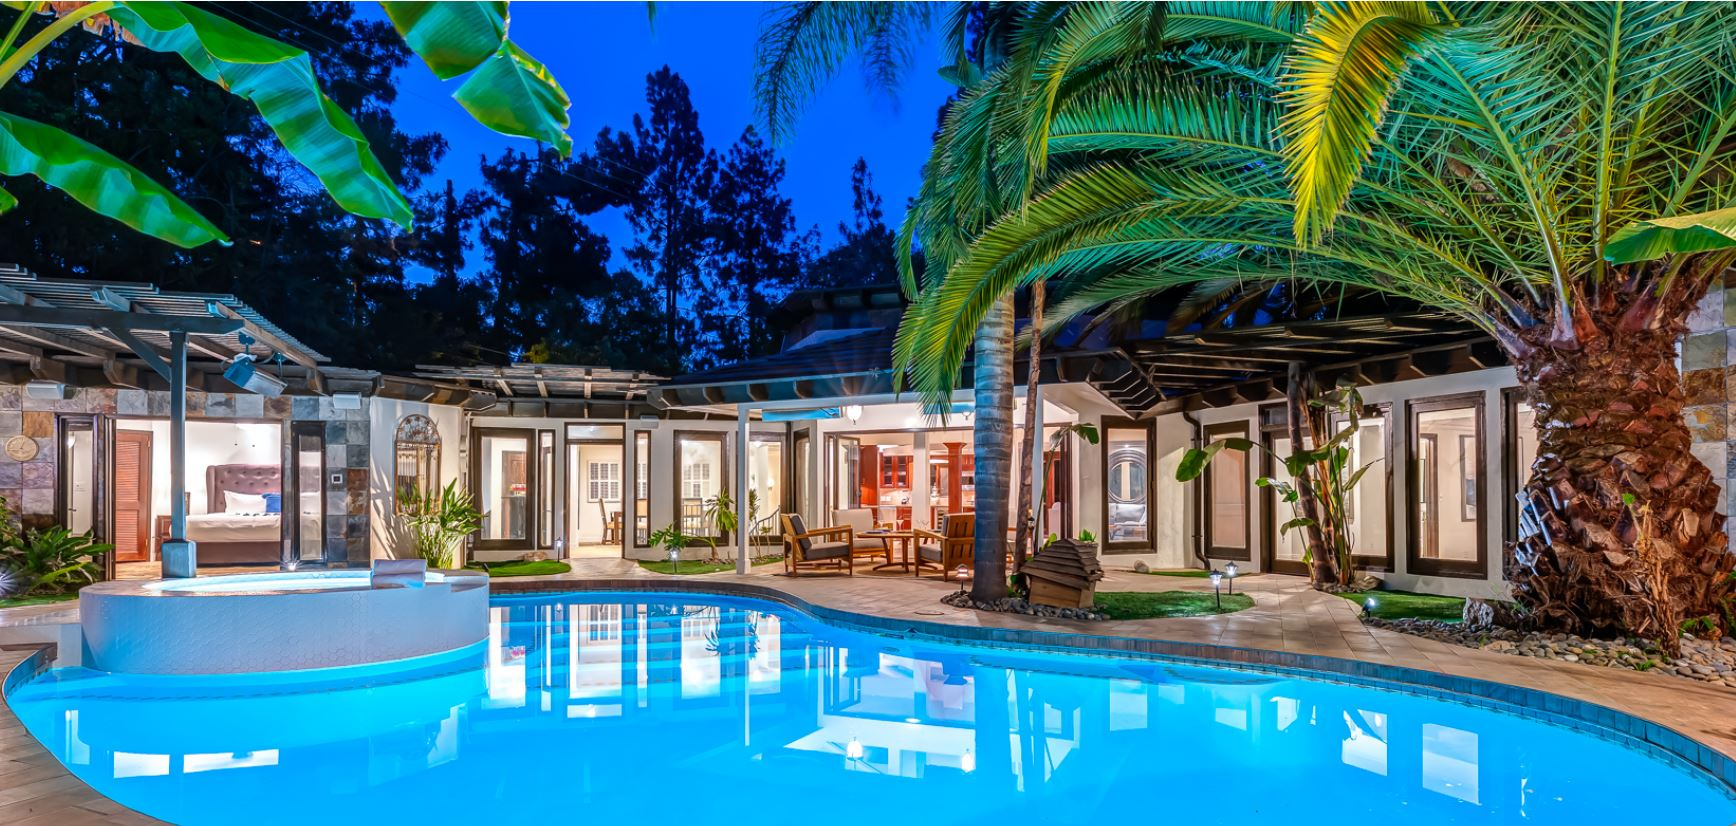 5 Bedroom Hollywood Hills with Pool